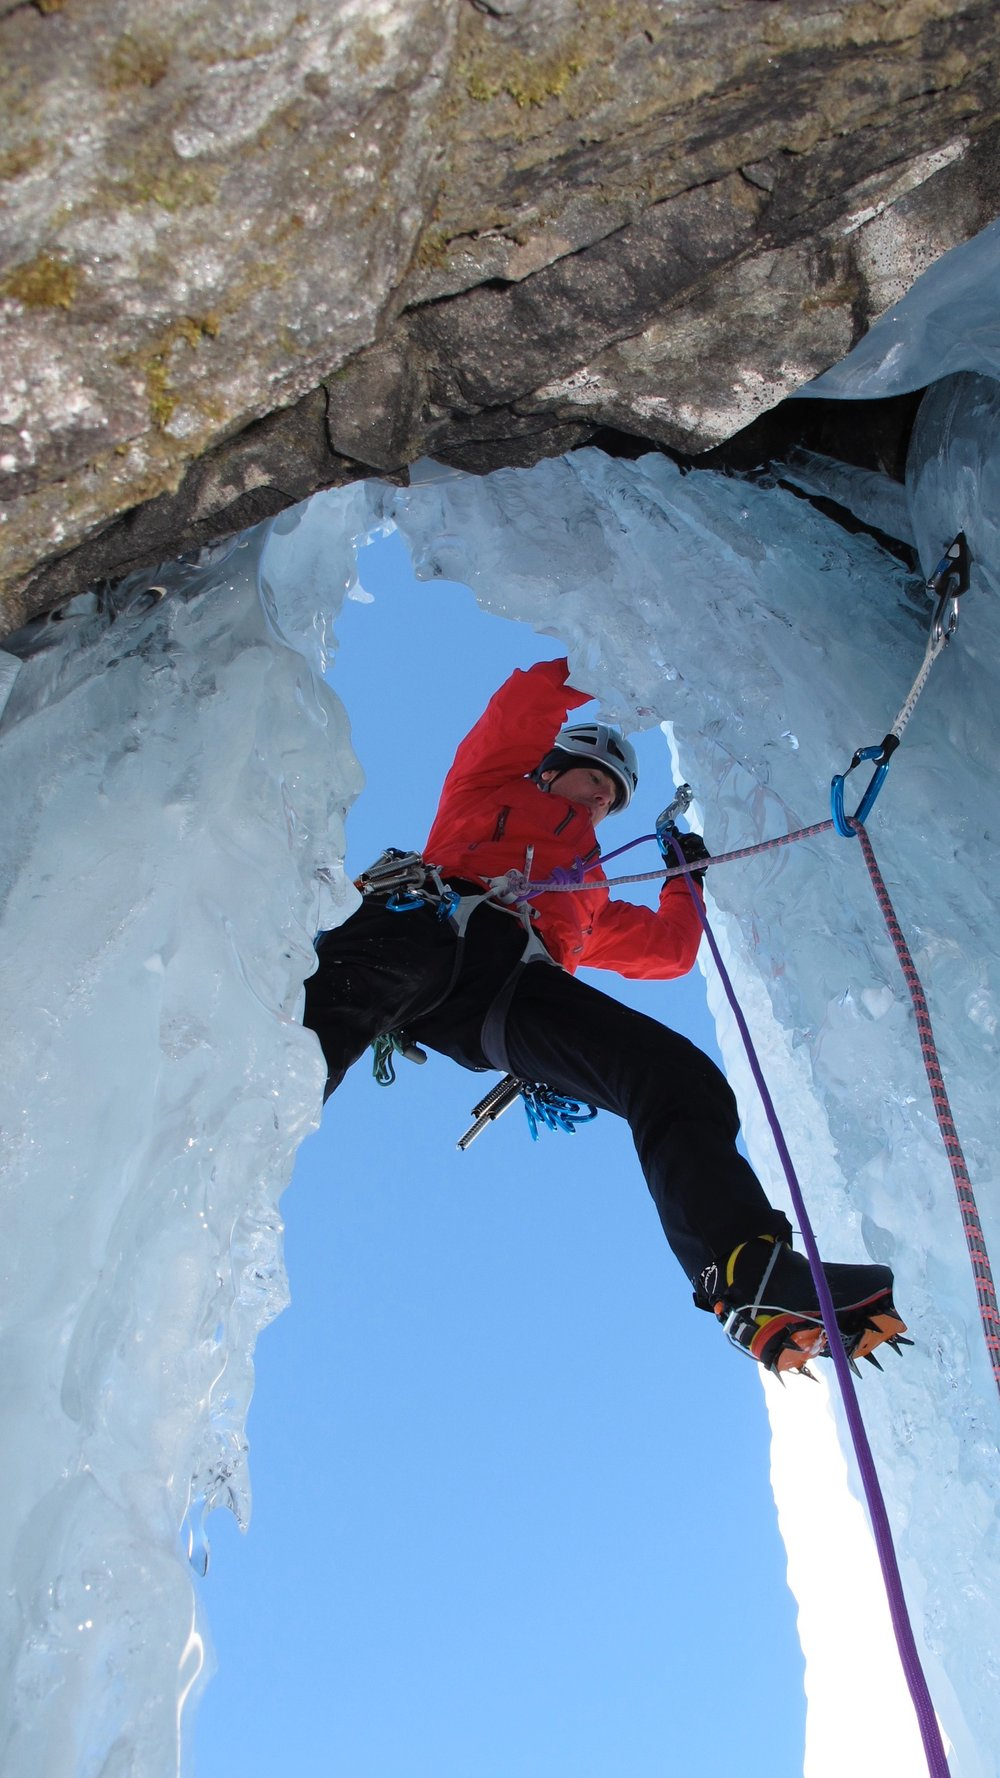 Spitfire WI 5+, Lyngen Alpes, Norway. First ascent with Mark Garthwaite in